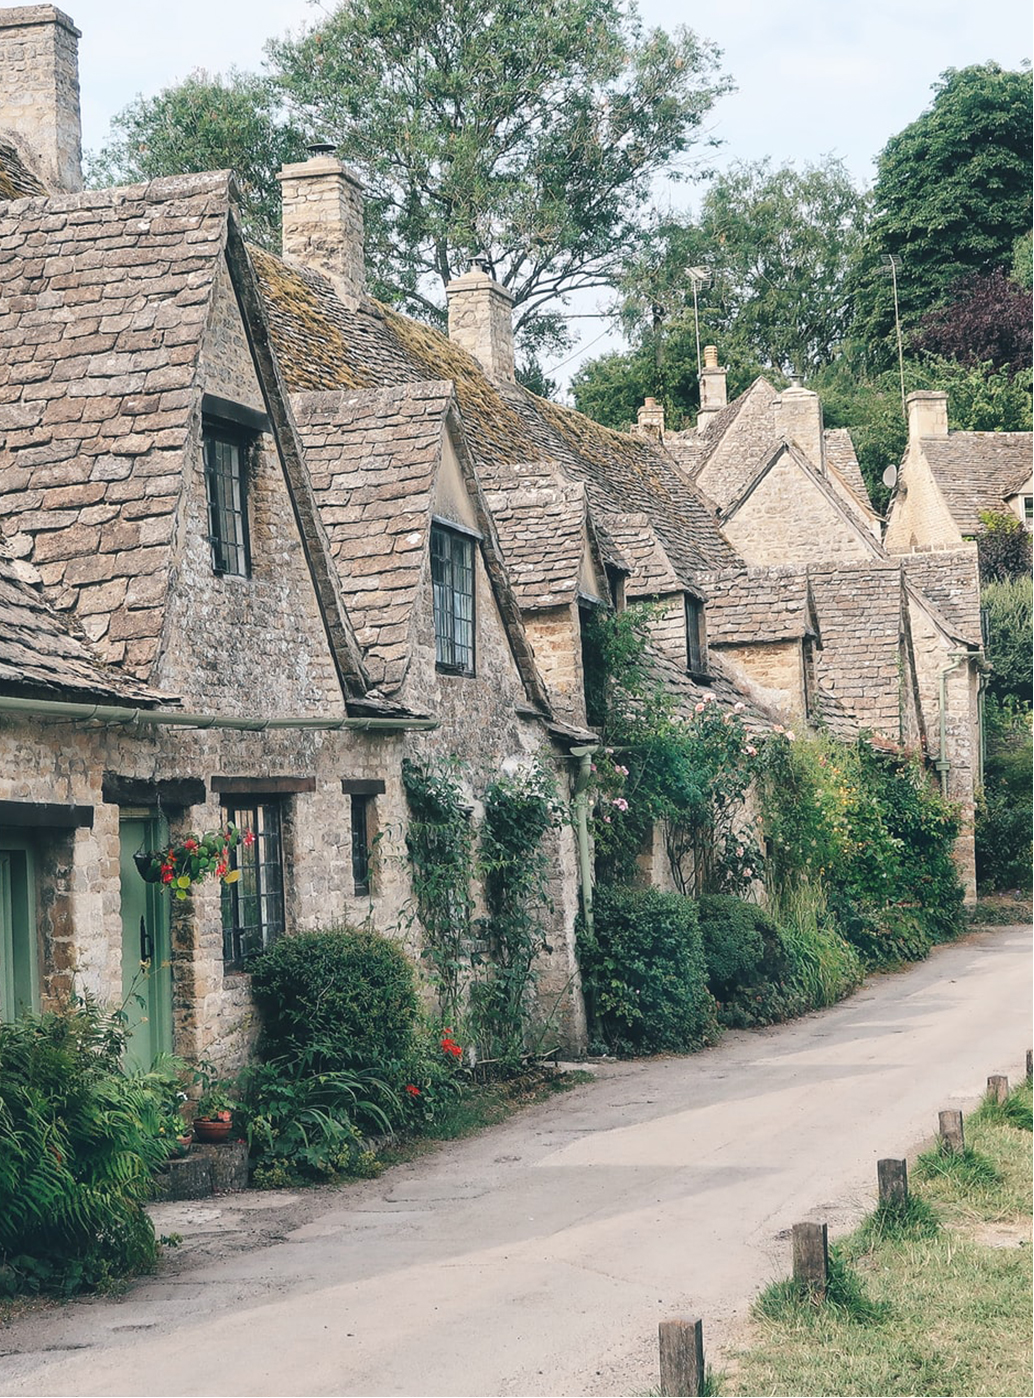 The quaint cottages of a cotswold village